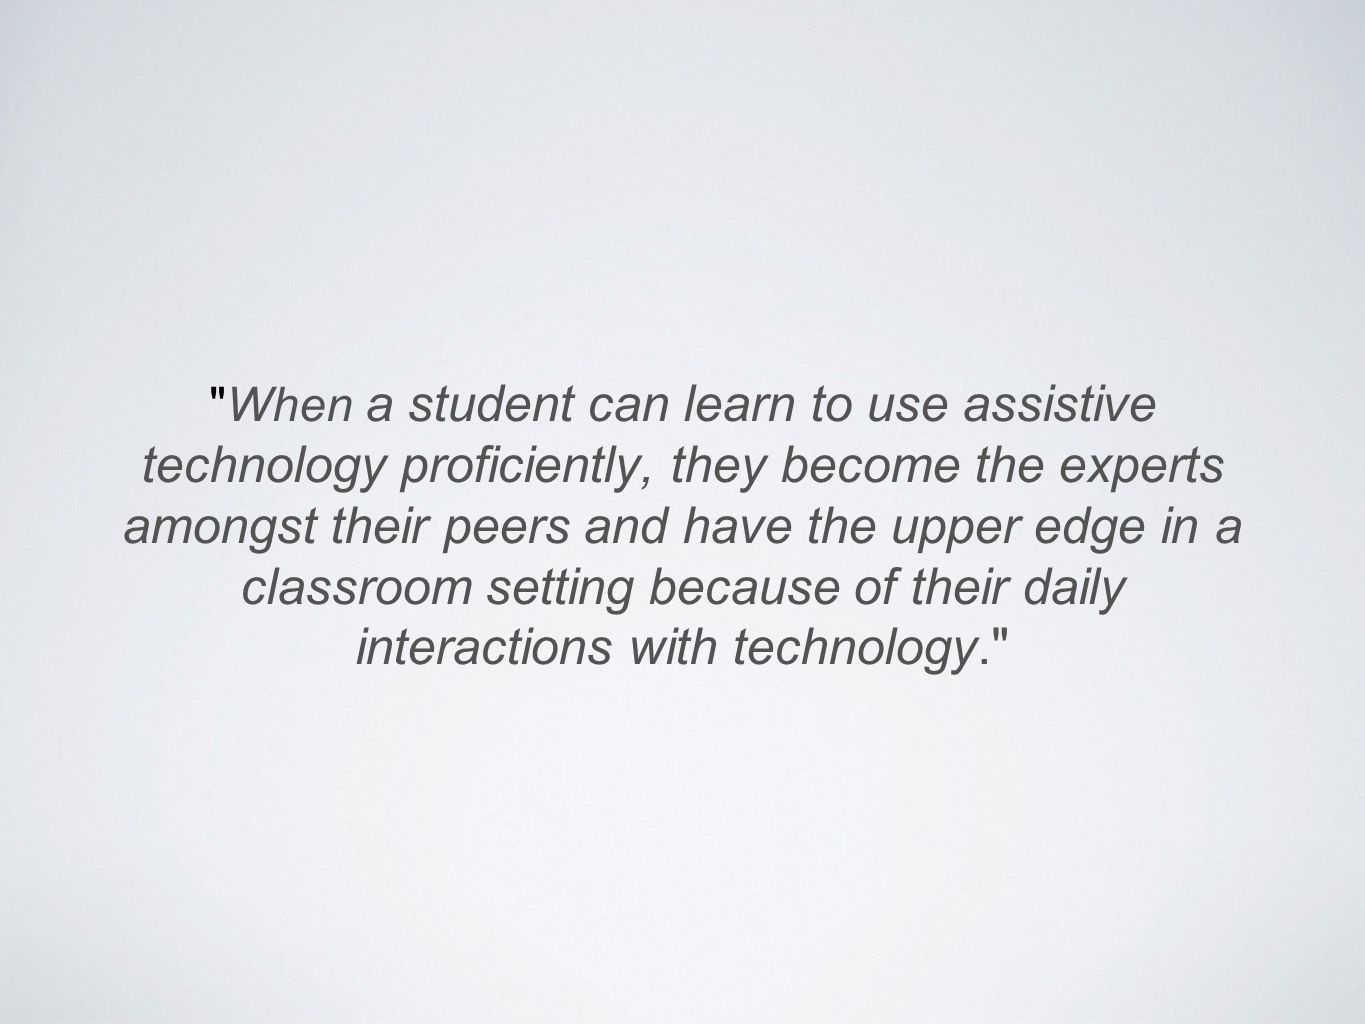 When a student can learn to use assistive technology proficiently, they become the experts amongst their peers and have the upper edge in a classroom setting because of their daily interactions with technology.